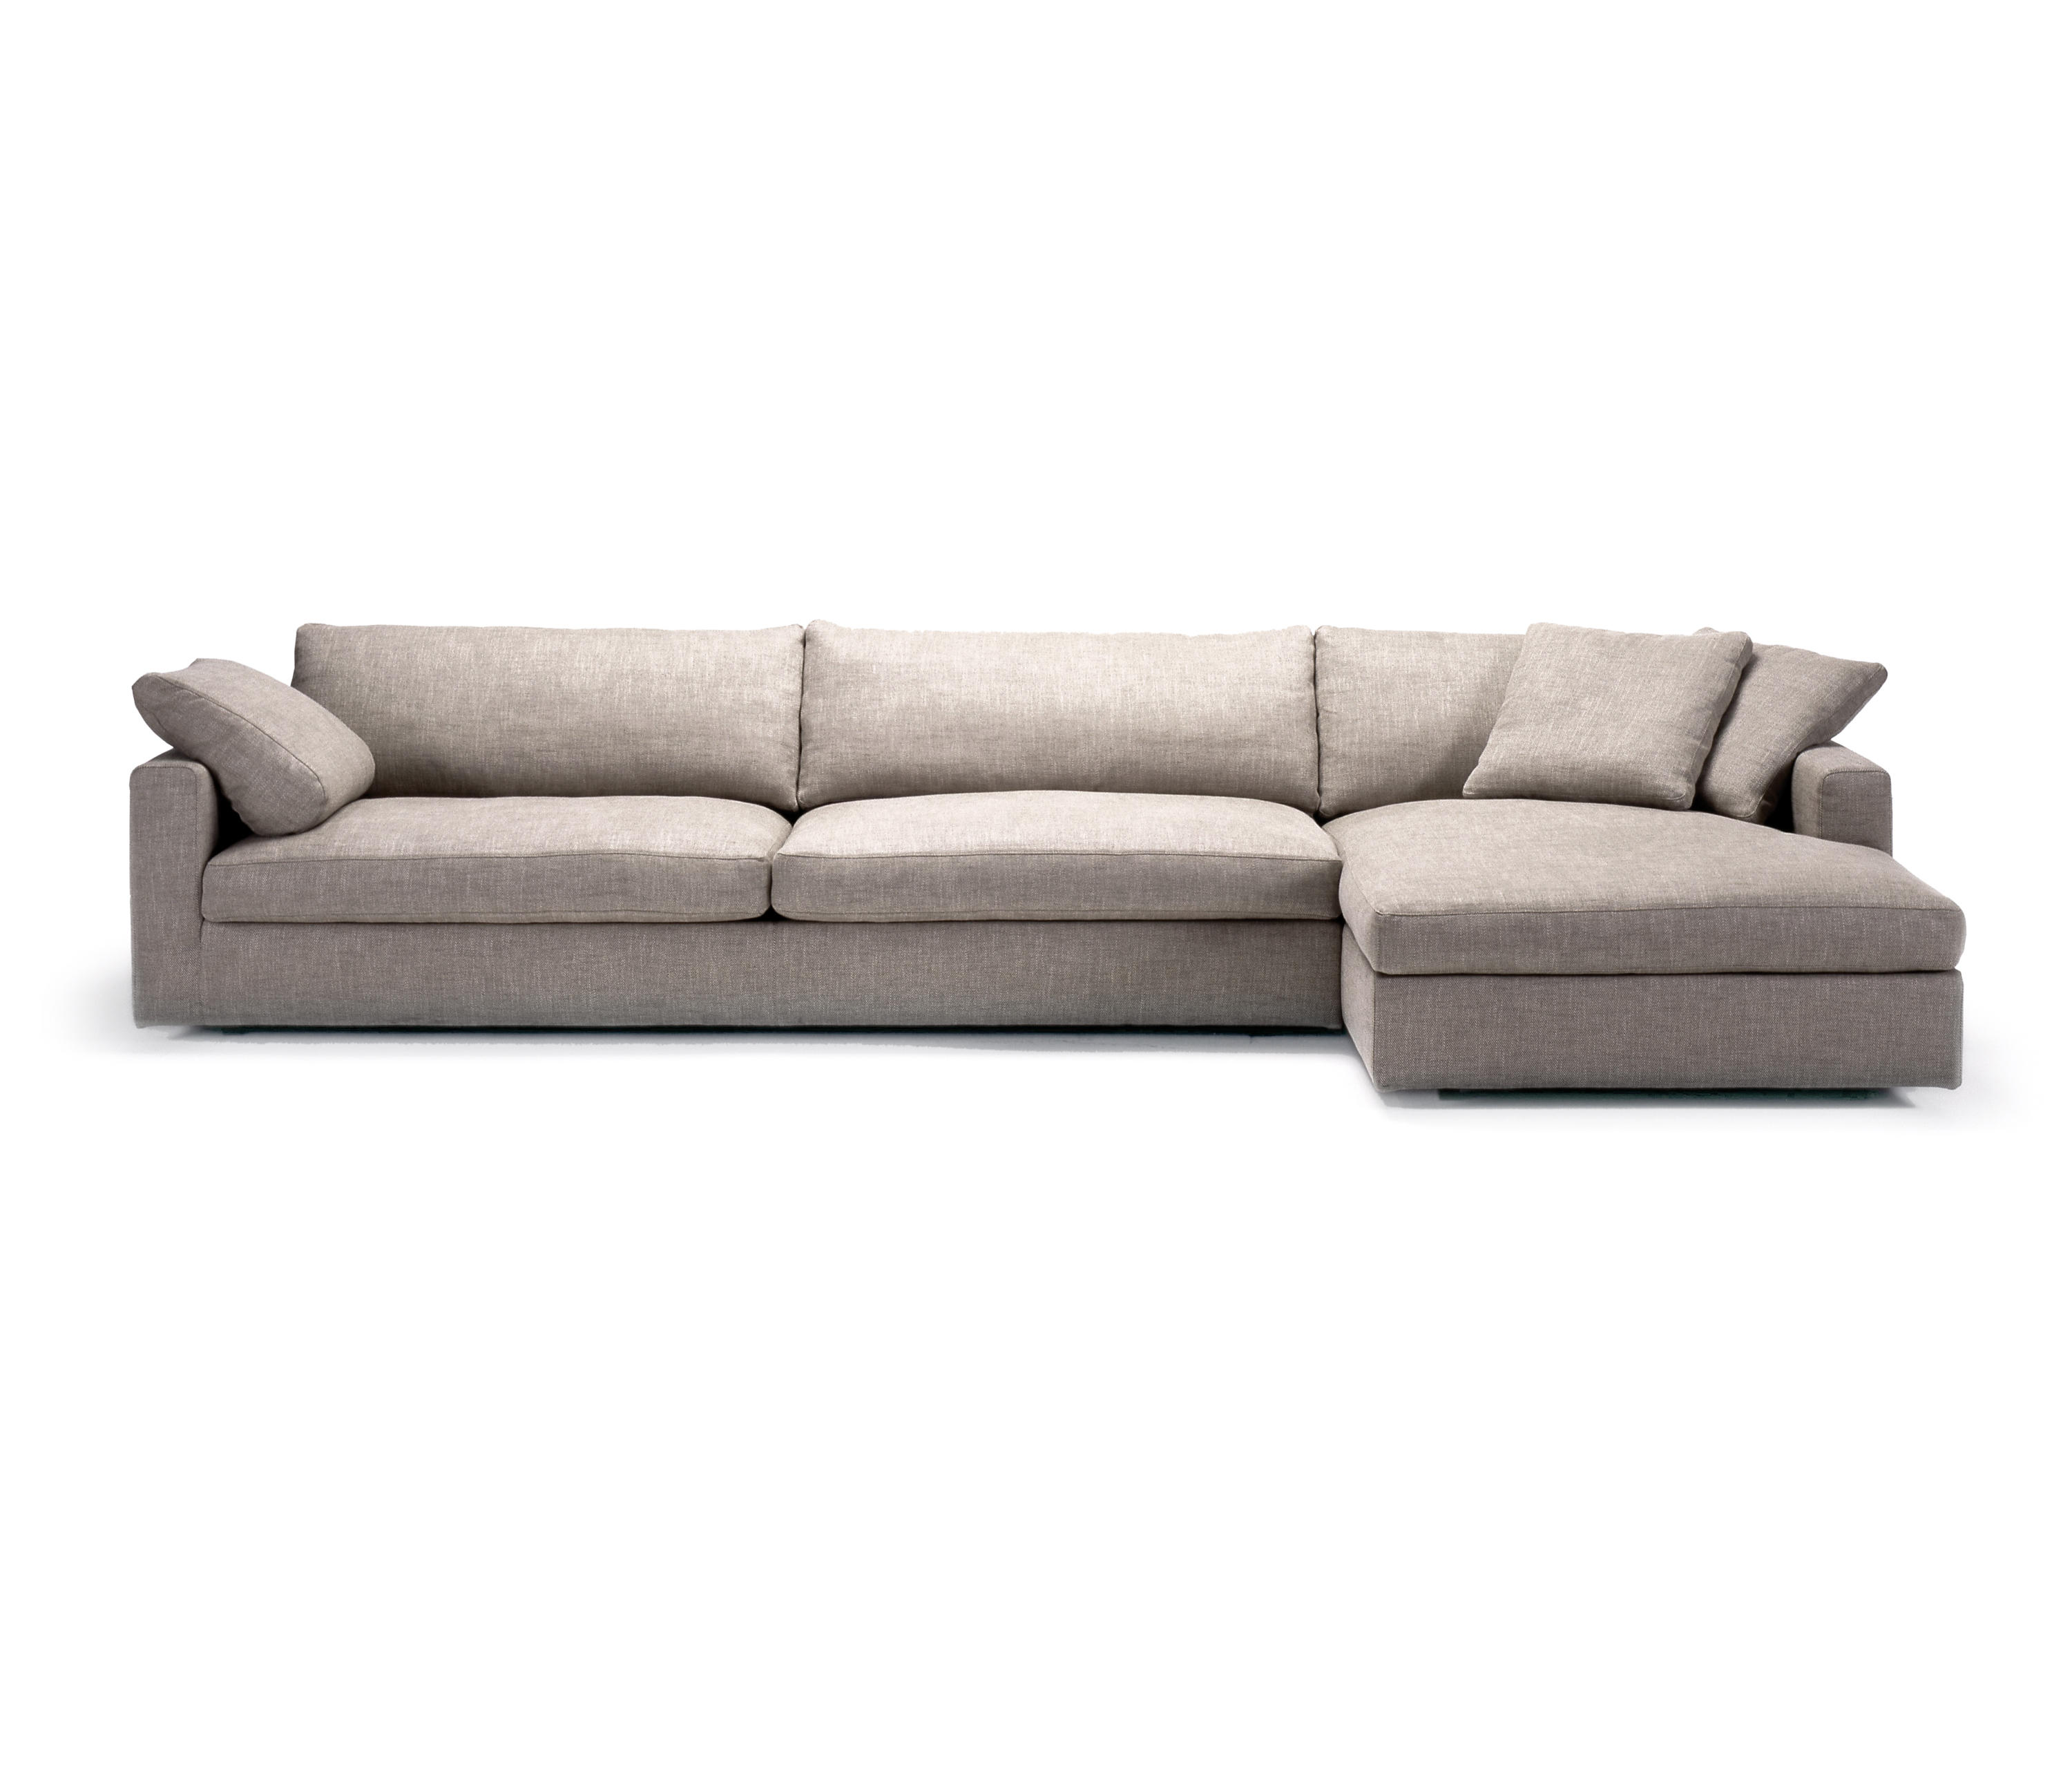 Fabio sofa chaise longue modular sofa systems from for Sofas con chaise longue